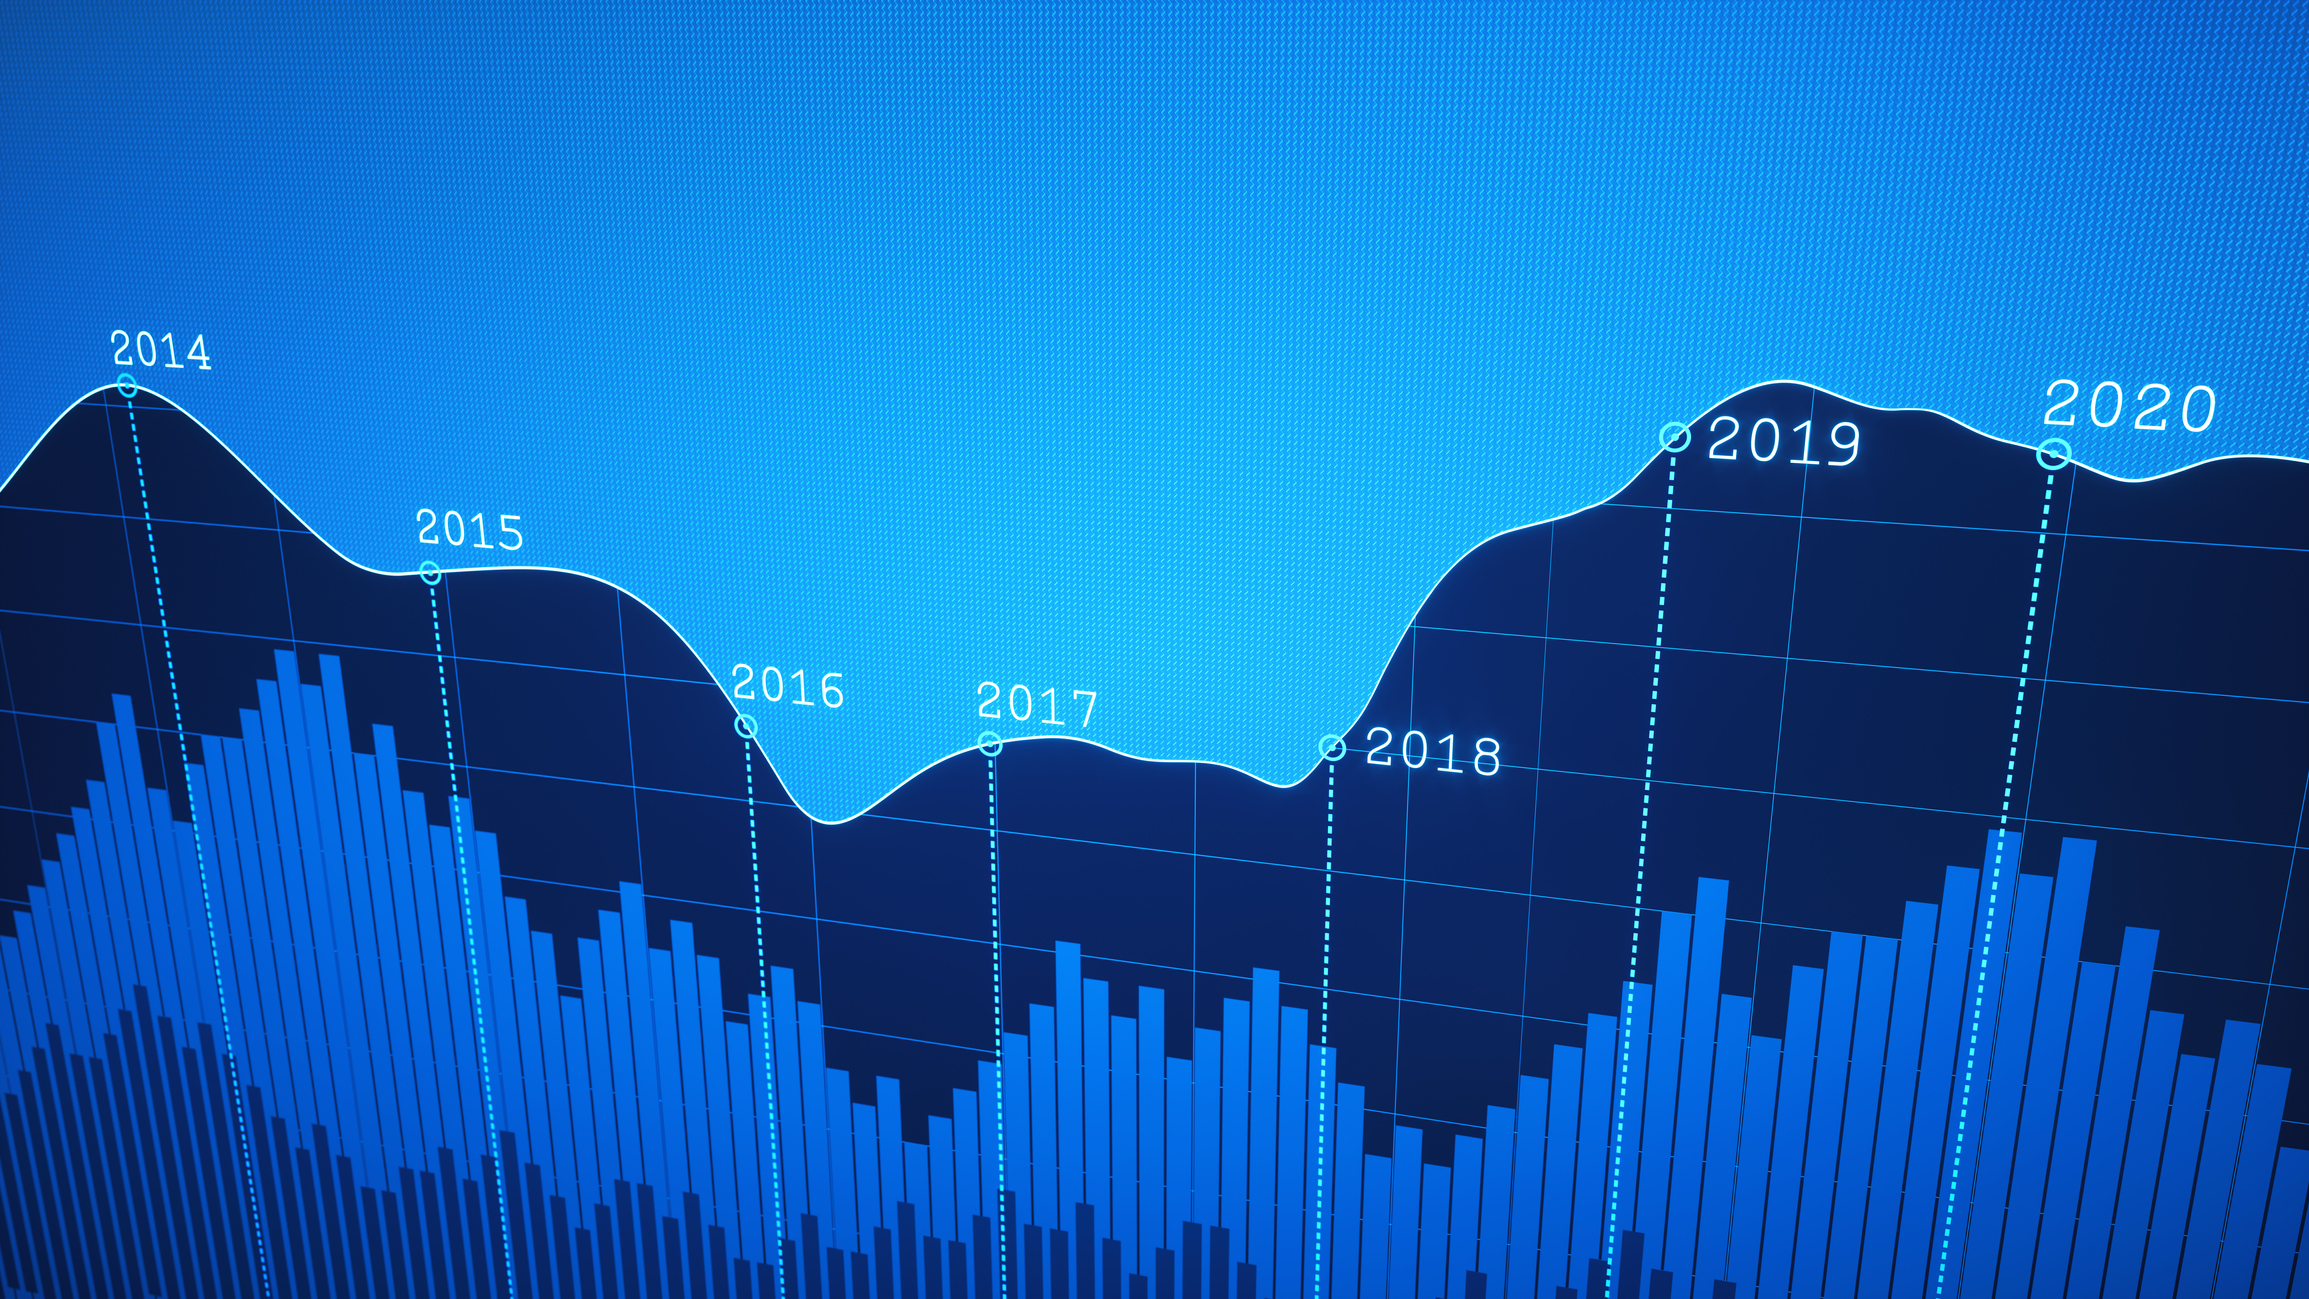 Simple Yearly Timeline Graph Report in Blue